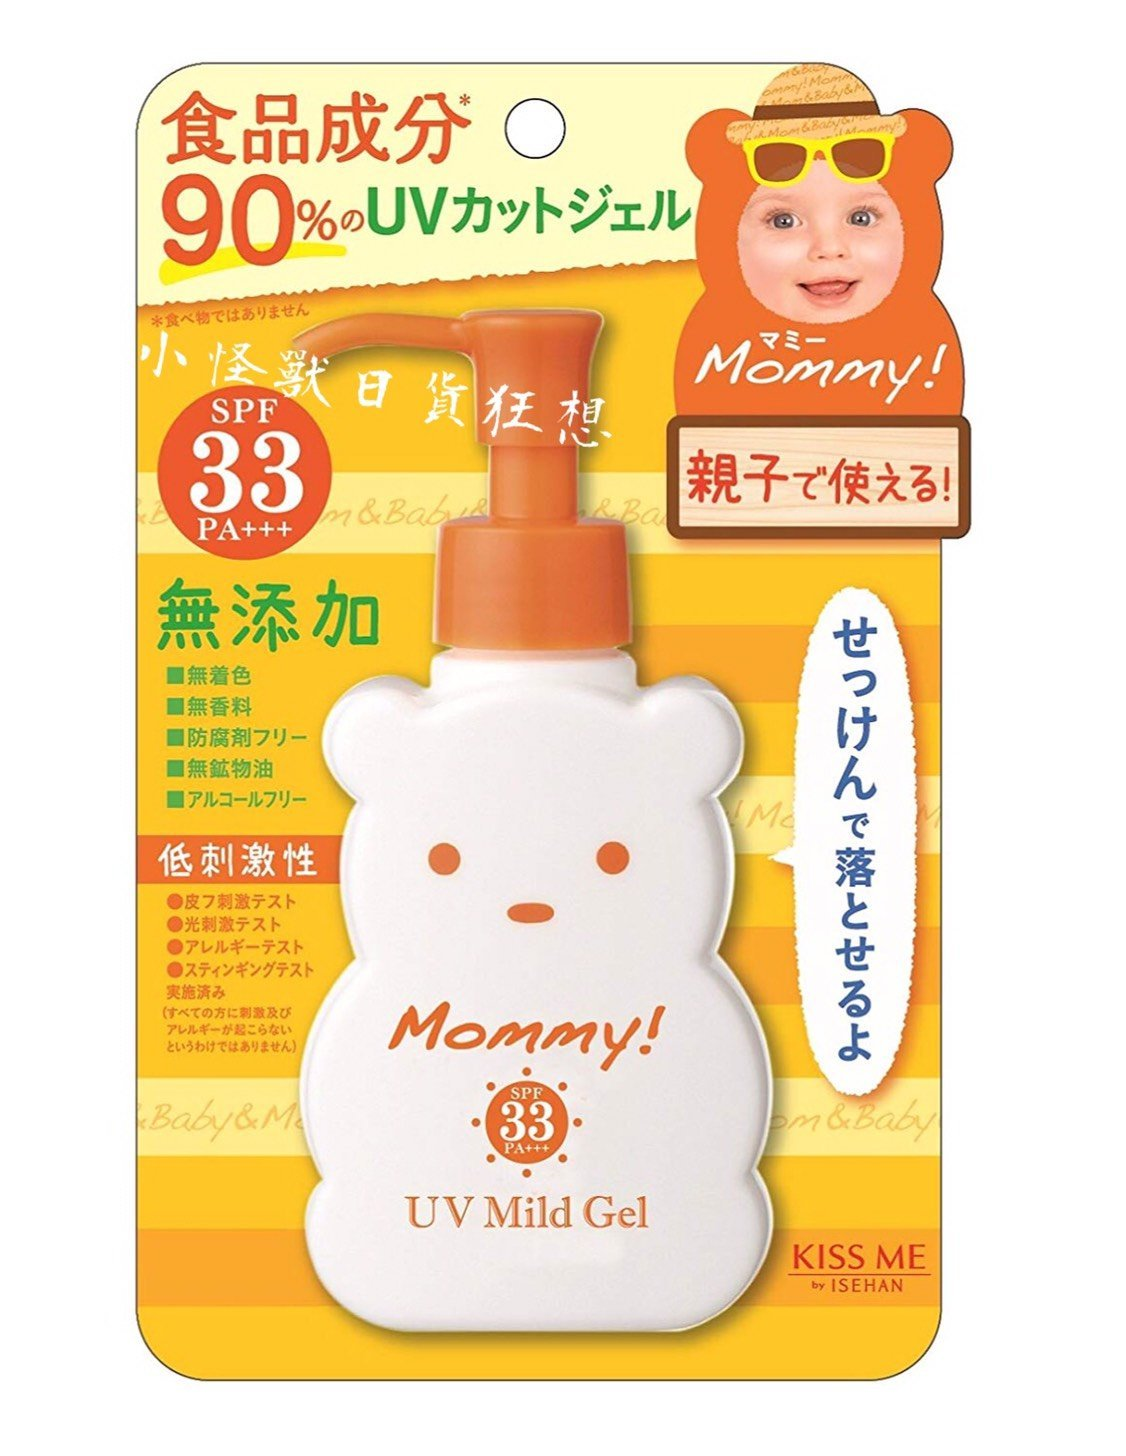 Isehan 伊勢半 Kiss Me Mommy UV Mild Gel 防曬啫喱 SPF 33 PA+++ 100g